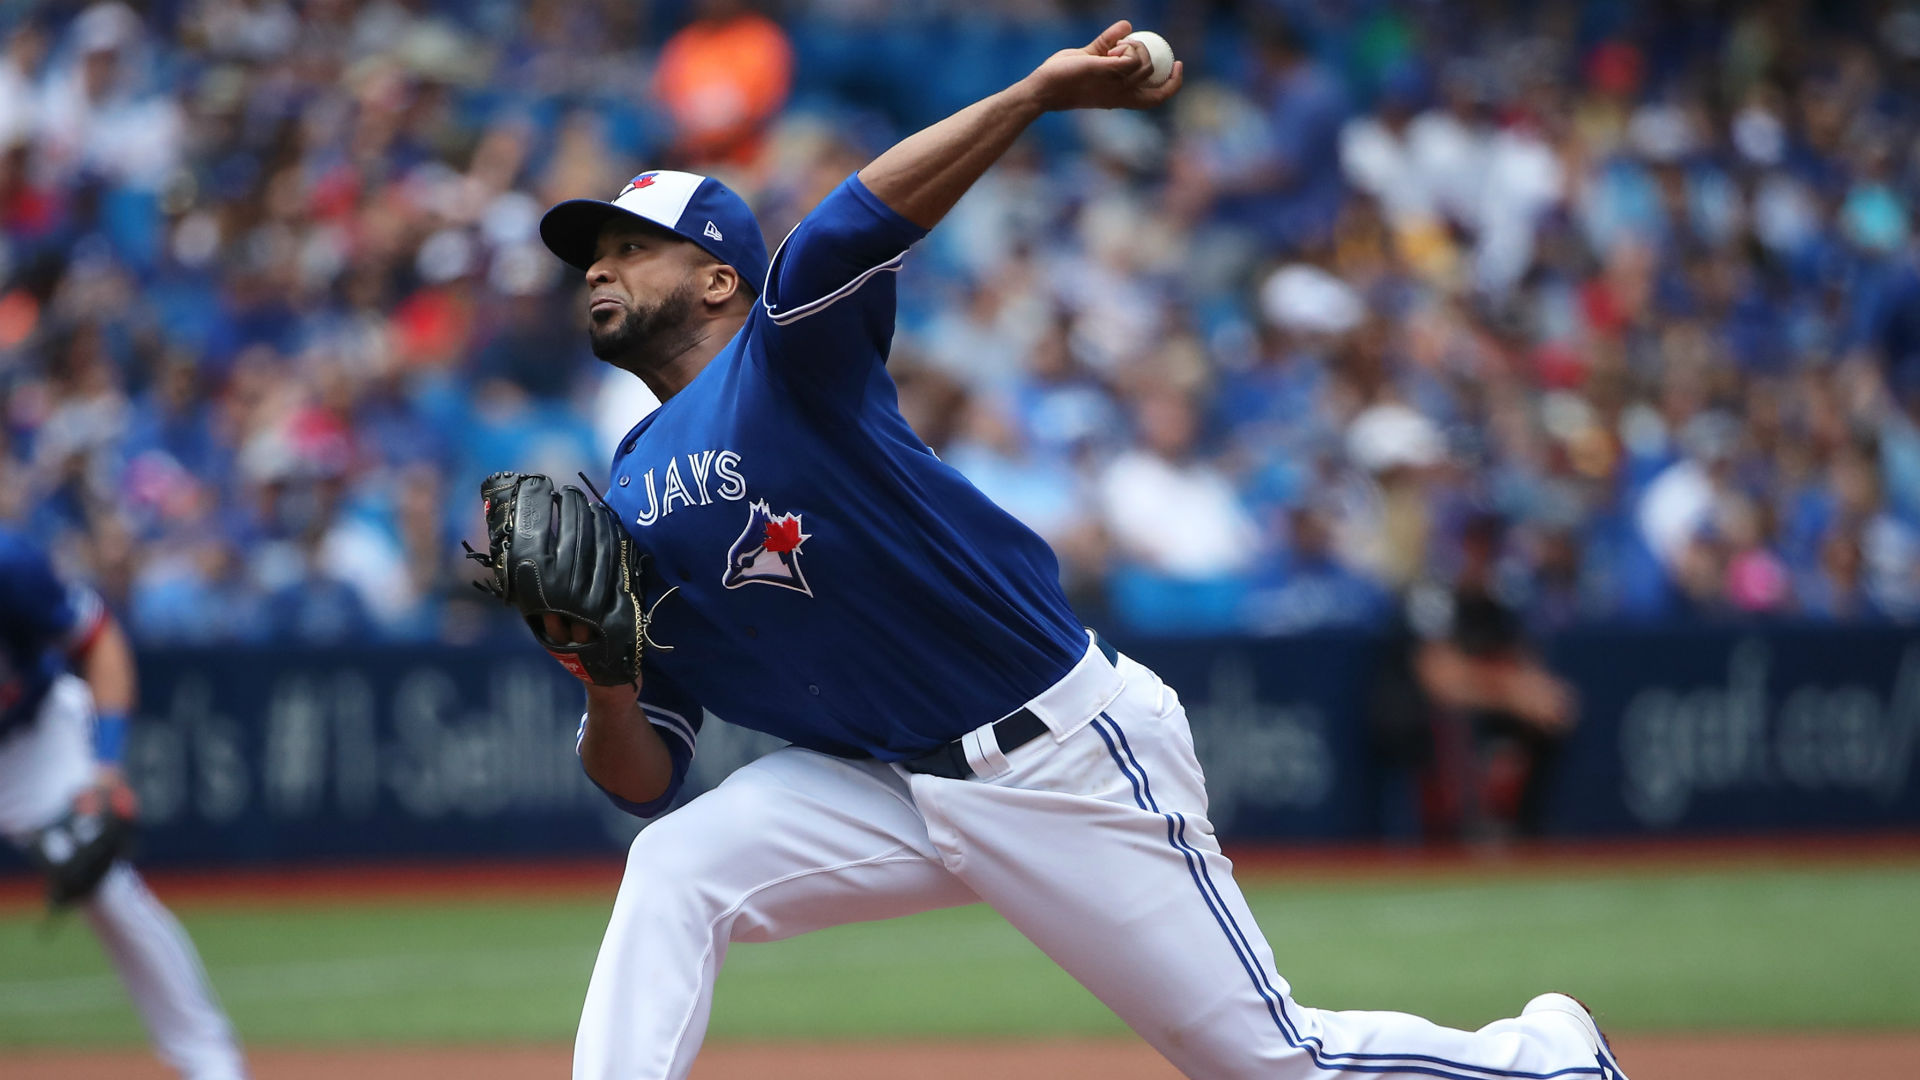 Houston Astros to acquire Francisco Liriano from Blue Jays